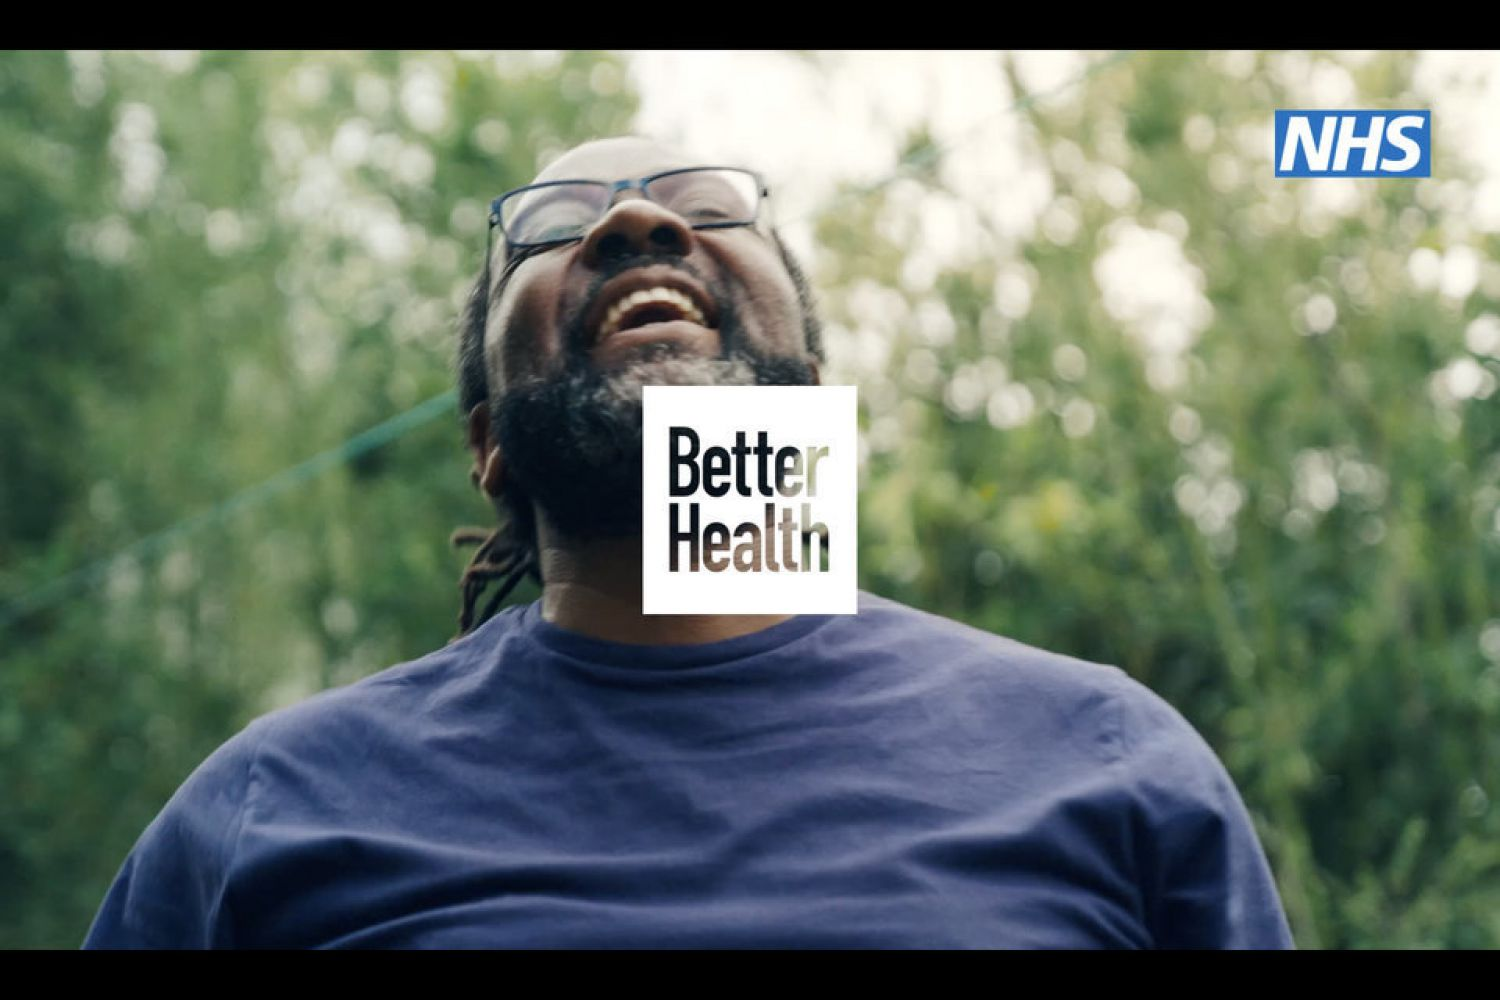 UK 'Better Health Campaign' Launched Yesterday (July 27th)